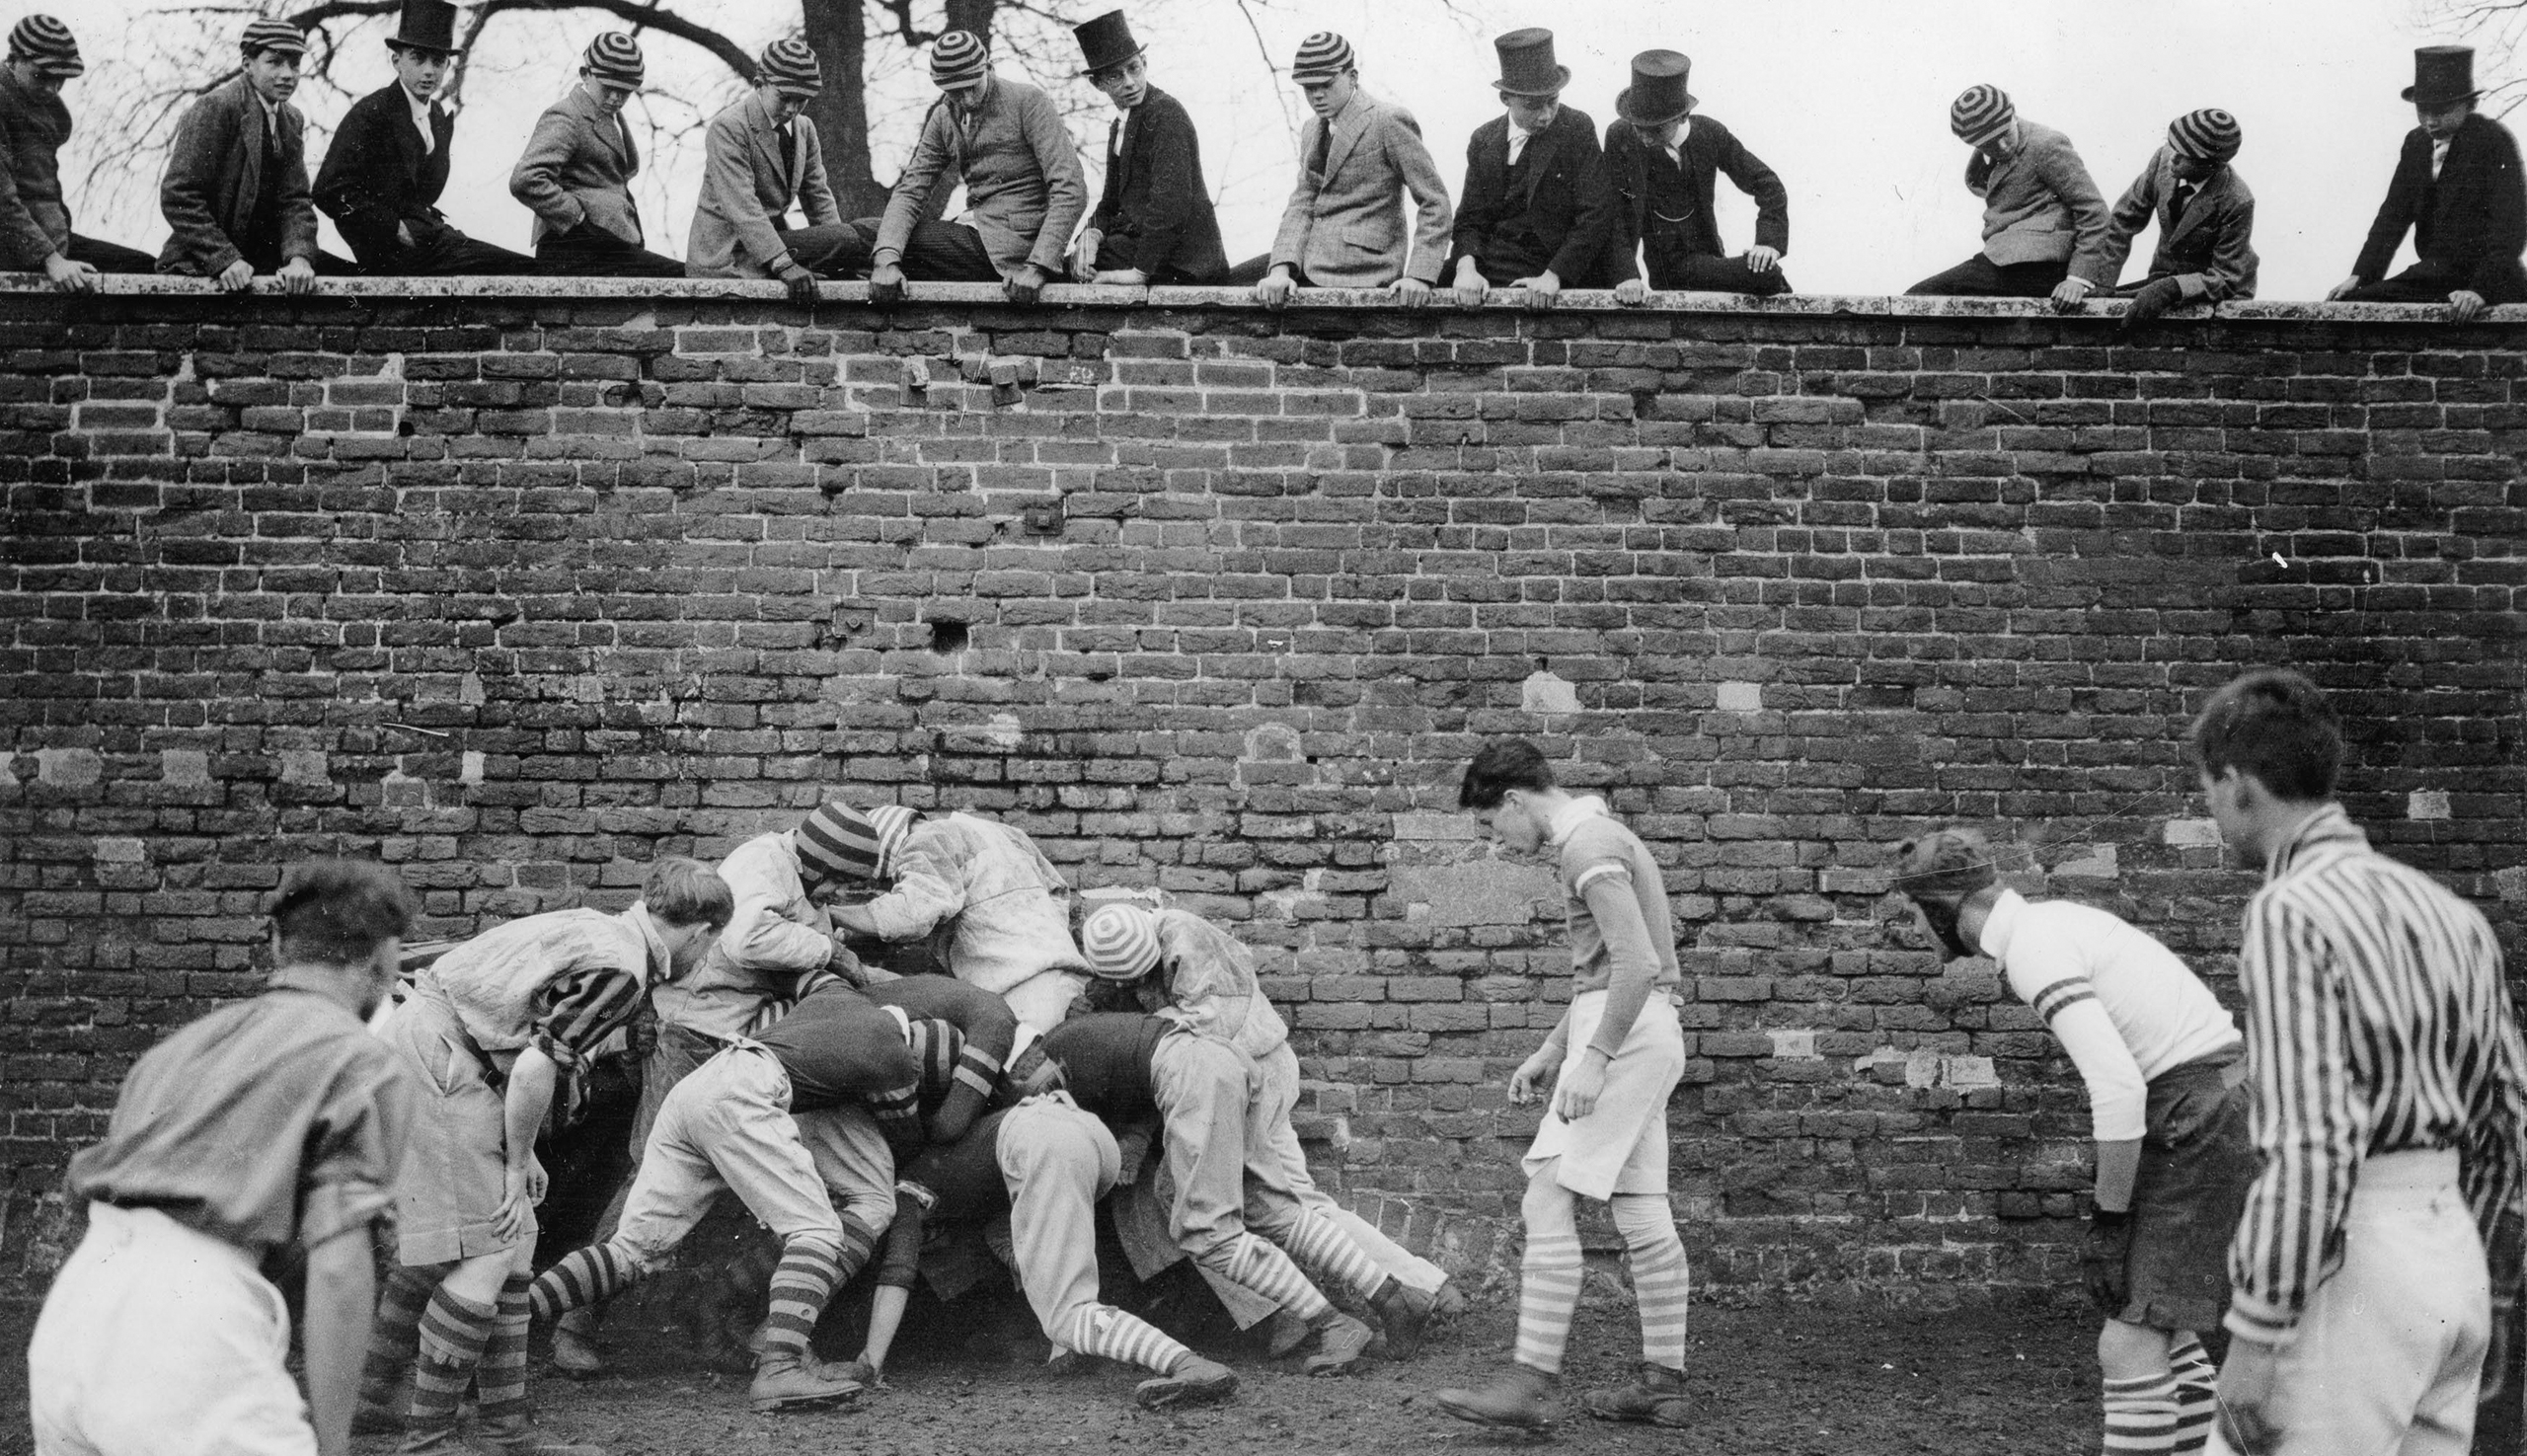 Students at Eton playing the wall game in 1933